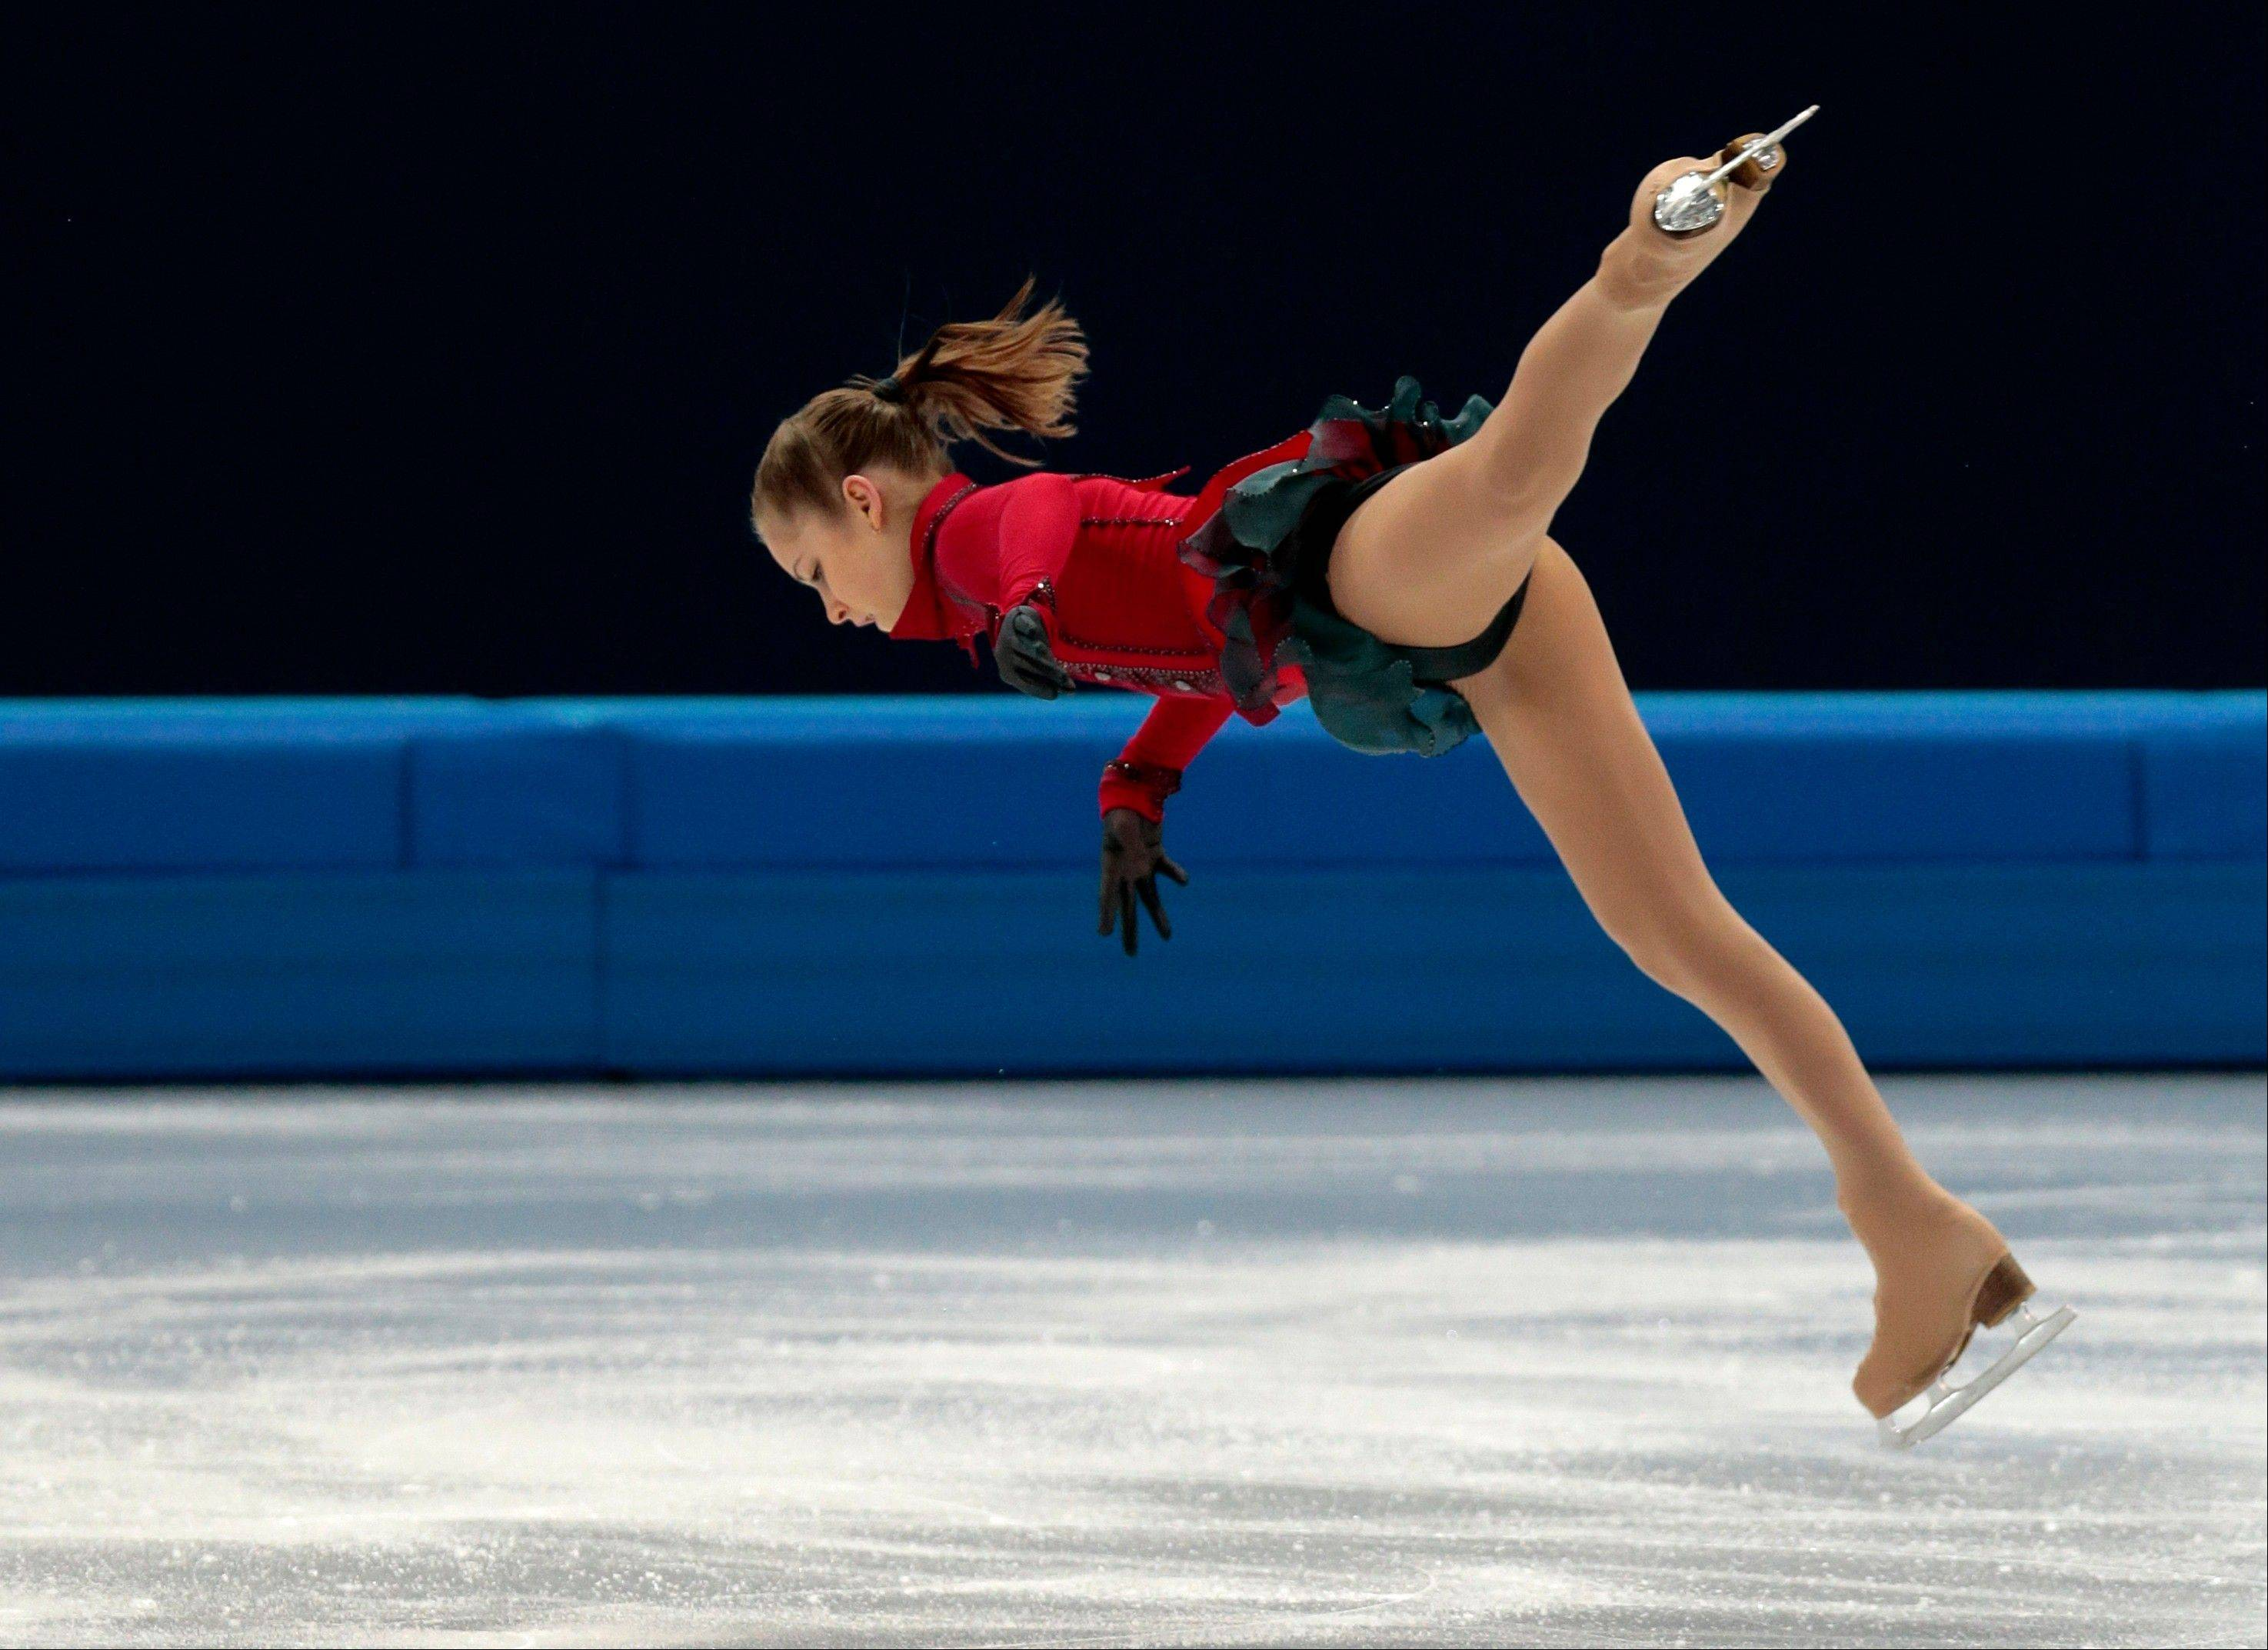 Julia Lipnitskaia of Russia competes in the women's team free skate figure skating competition at the Iceberg Skating Palace during the 2014 Winter Olympics, Sunday, Feb. 9, 2014, in Sochi, Russia.